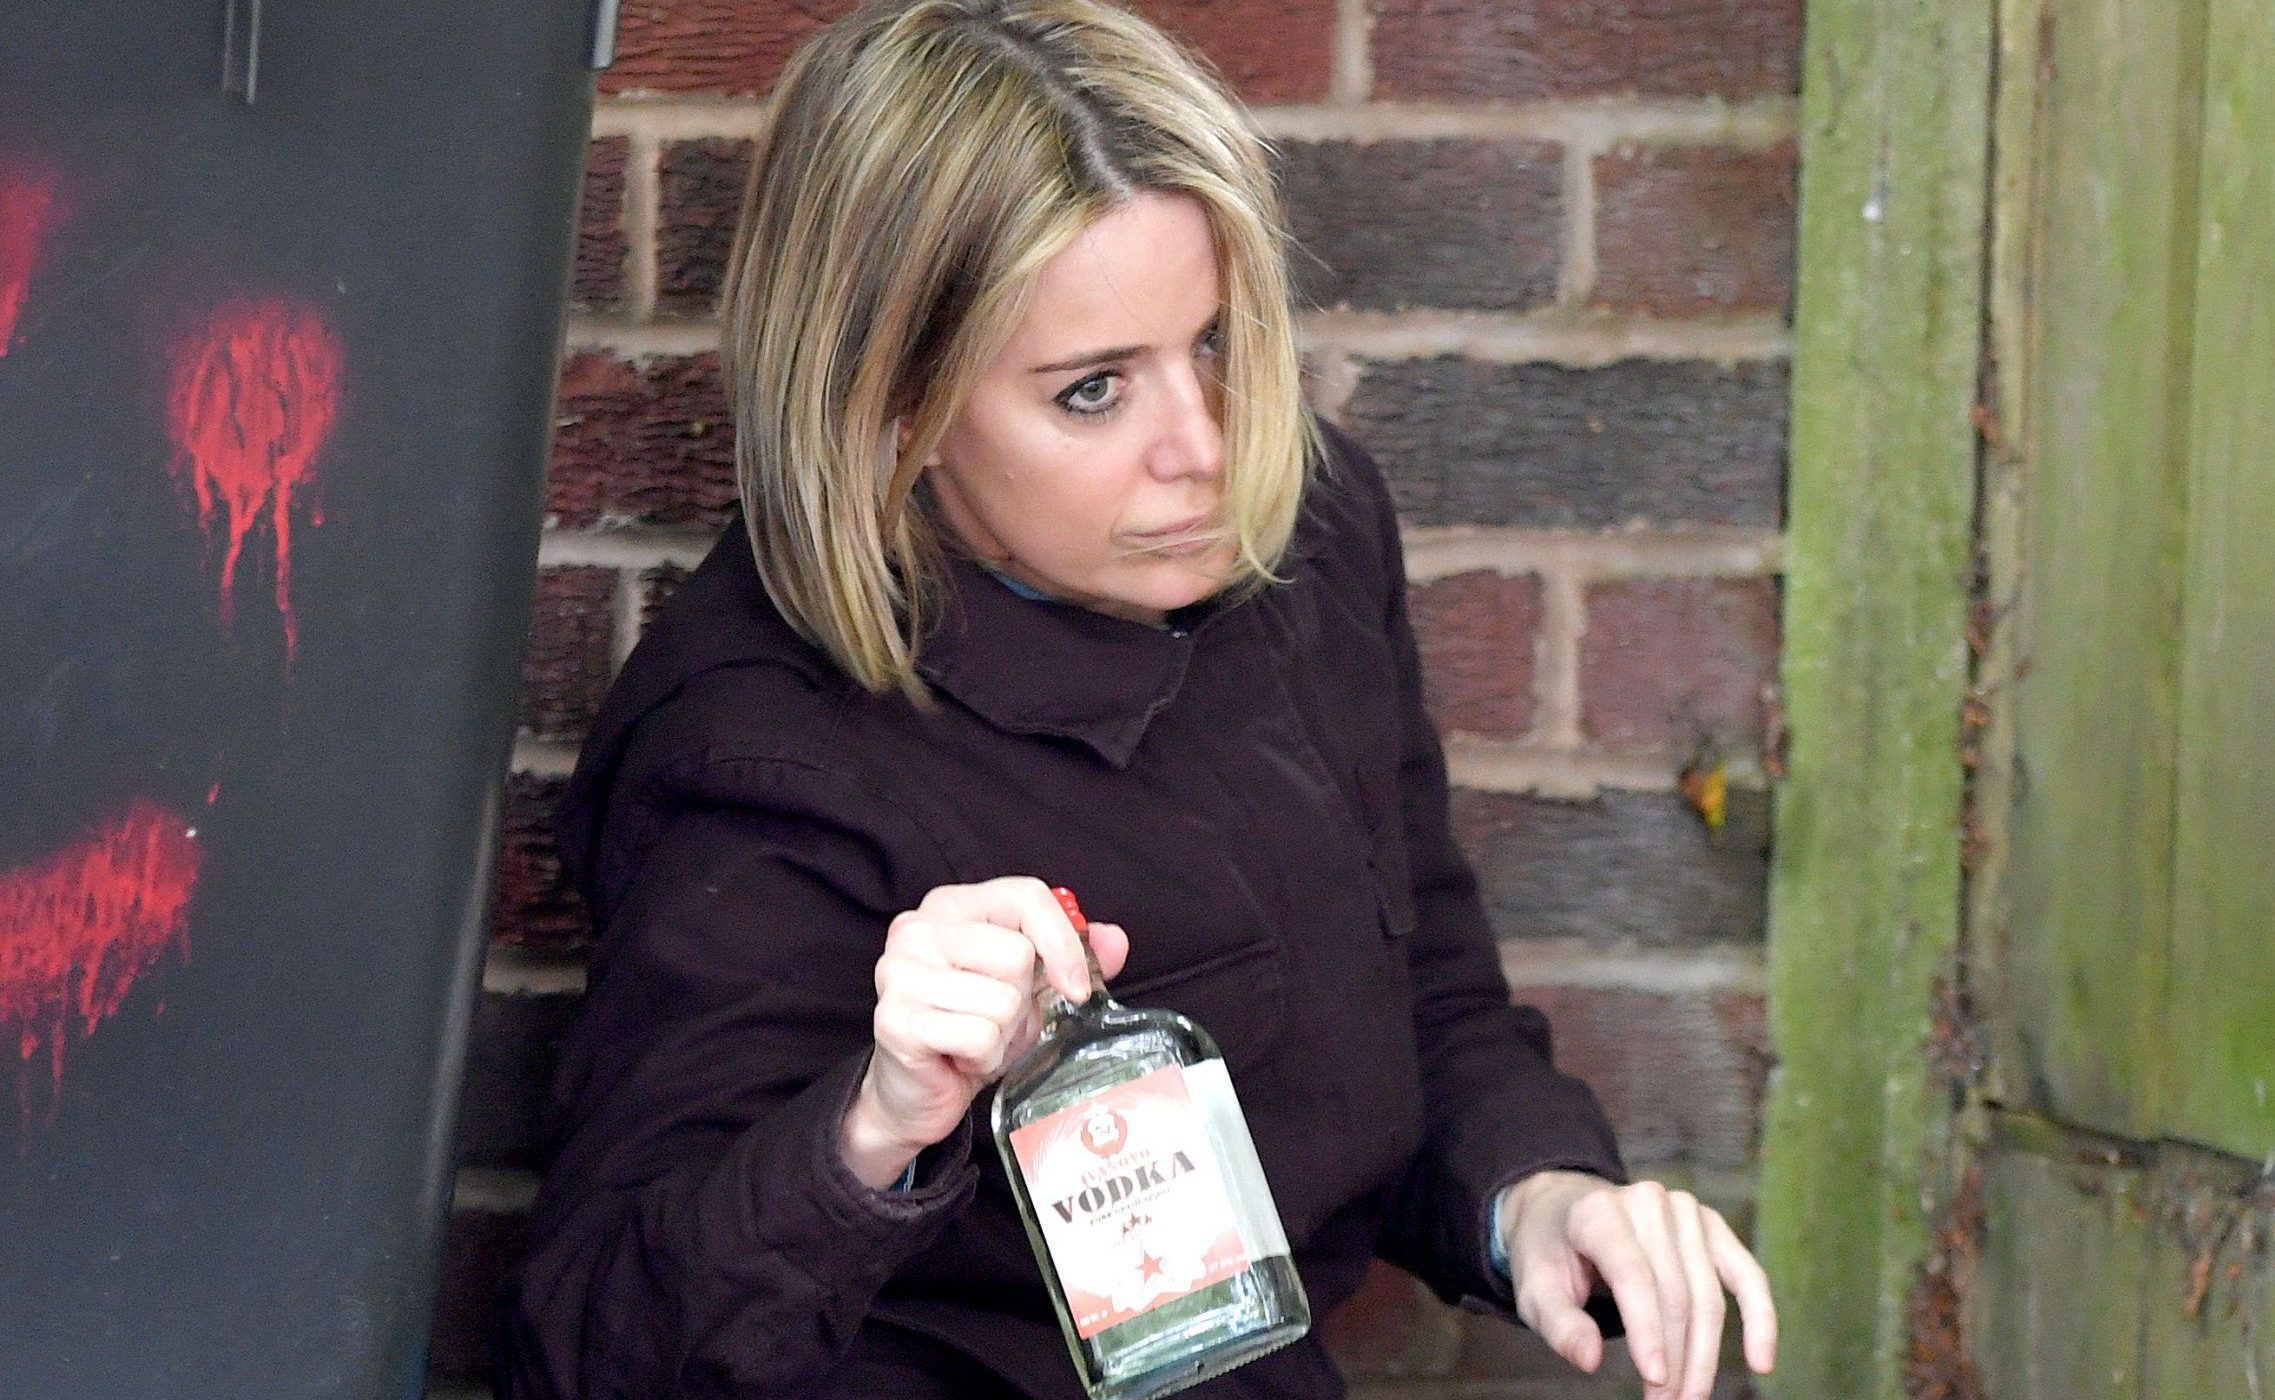 Pics Paul Cousans/Zenpix Ltd....... Corrie... Tough times for Abi Franklin(Sally Carman) As she is desperate to see her twins Lexi and Charlie.(played by real life twins Jasmine and Jacob Fish) who have been adopted. Downing a bottle of Vodka she heads off to try and catch a glimpse of her siblings as they arrive home with their adoptive mum. Hoping that they would look miserable she realised their lives had changed dramatically When she sees her kids enjoying themselves. Abi is left in tears as she realises how bad a mother she really is. Abi can only stand and watch as her kids arrive home